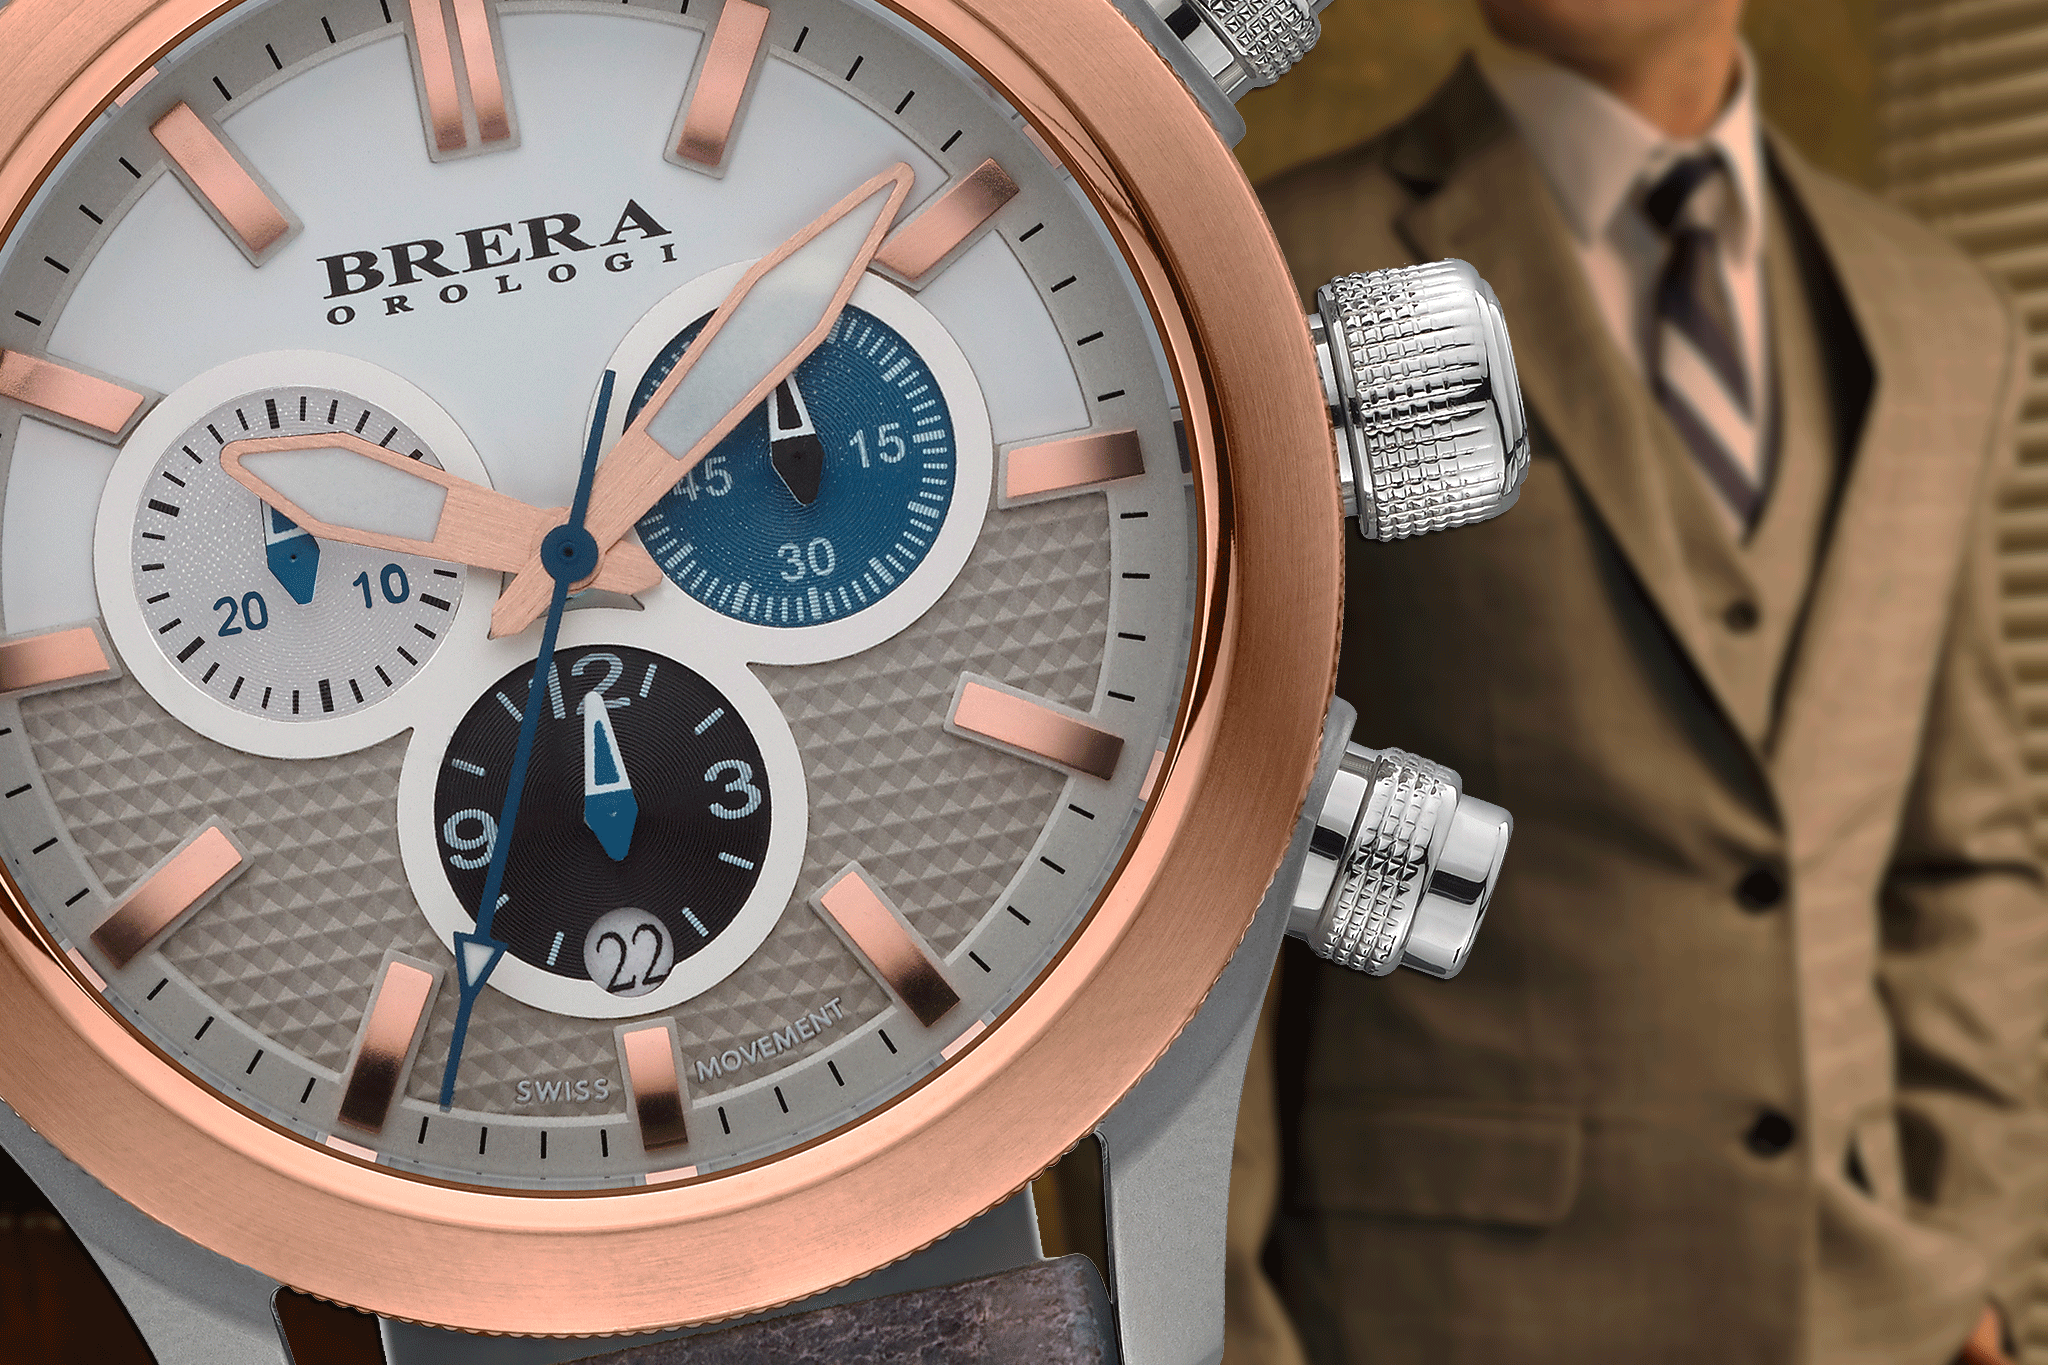 Brera Orologi Watches – Italian Design With A Swiss Heart